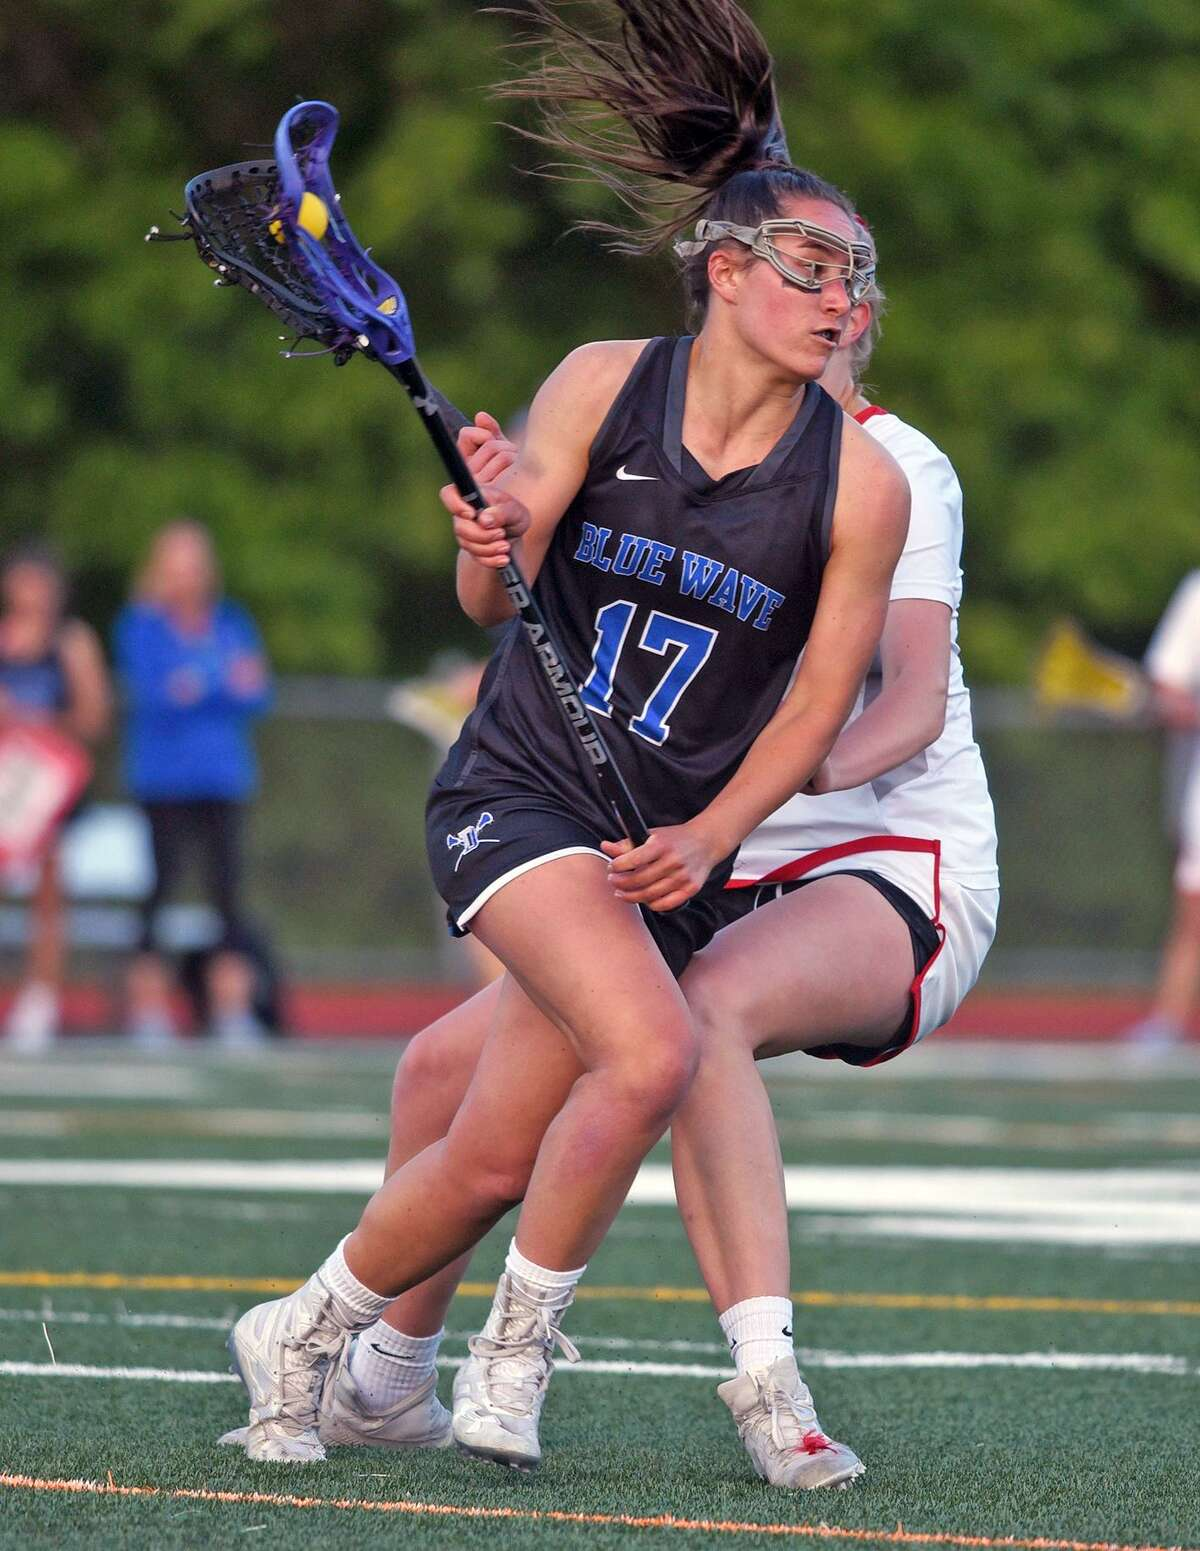 Darien's Sarah Jaques (17) drives past a New Canaan Ram during the FCIAC girls lacrosse championship at Testa Field in Norwalk on Wednesday, May 22, 2019.